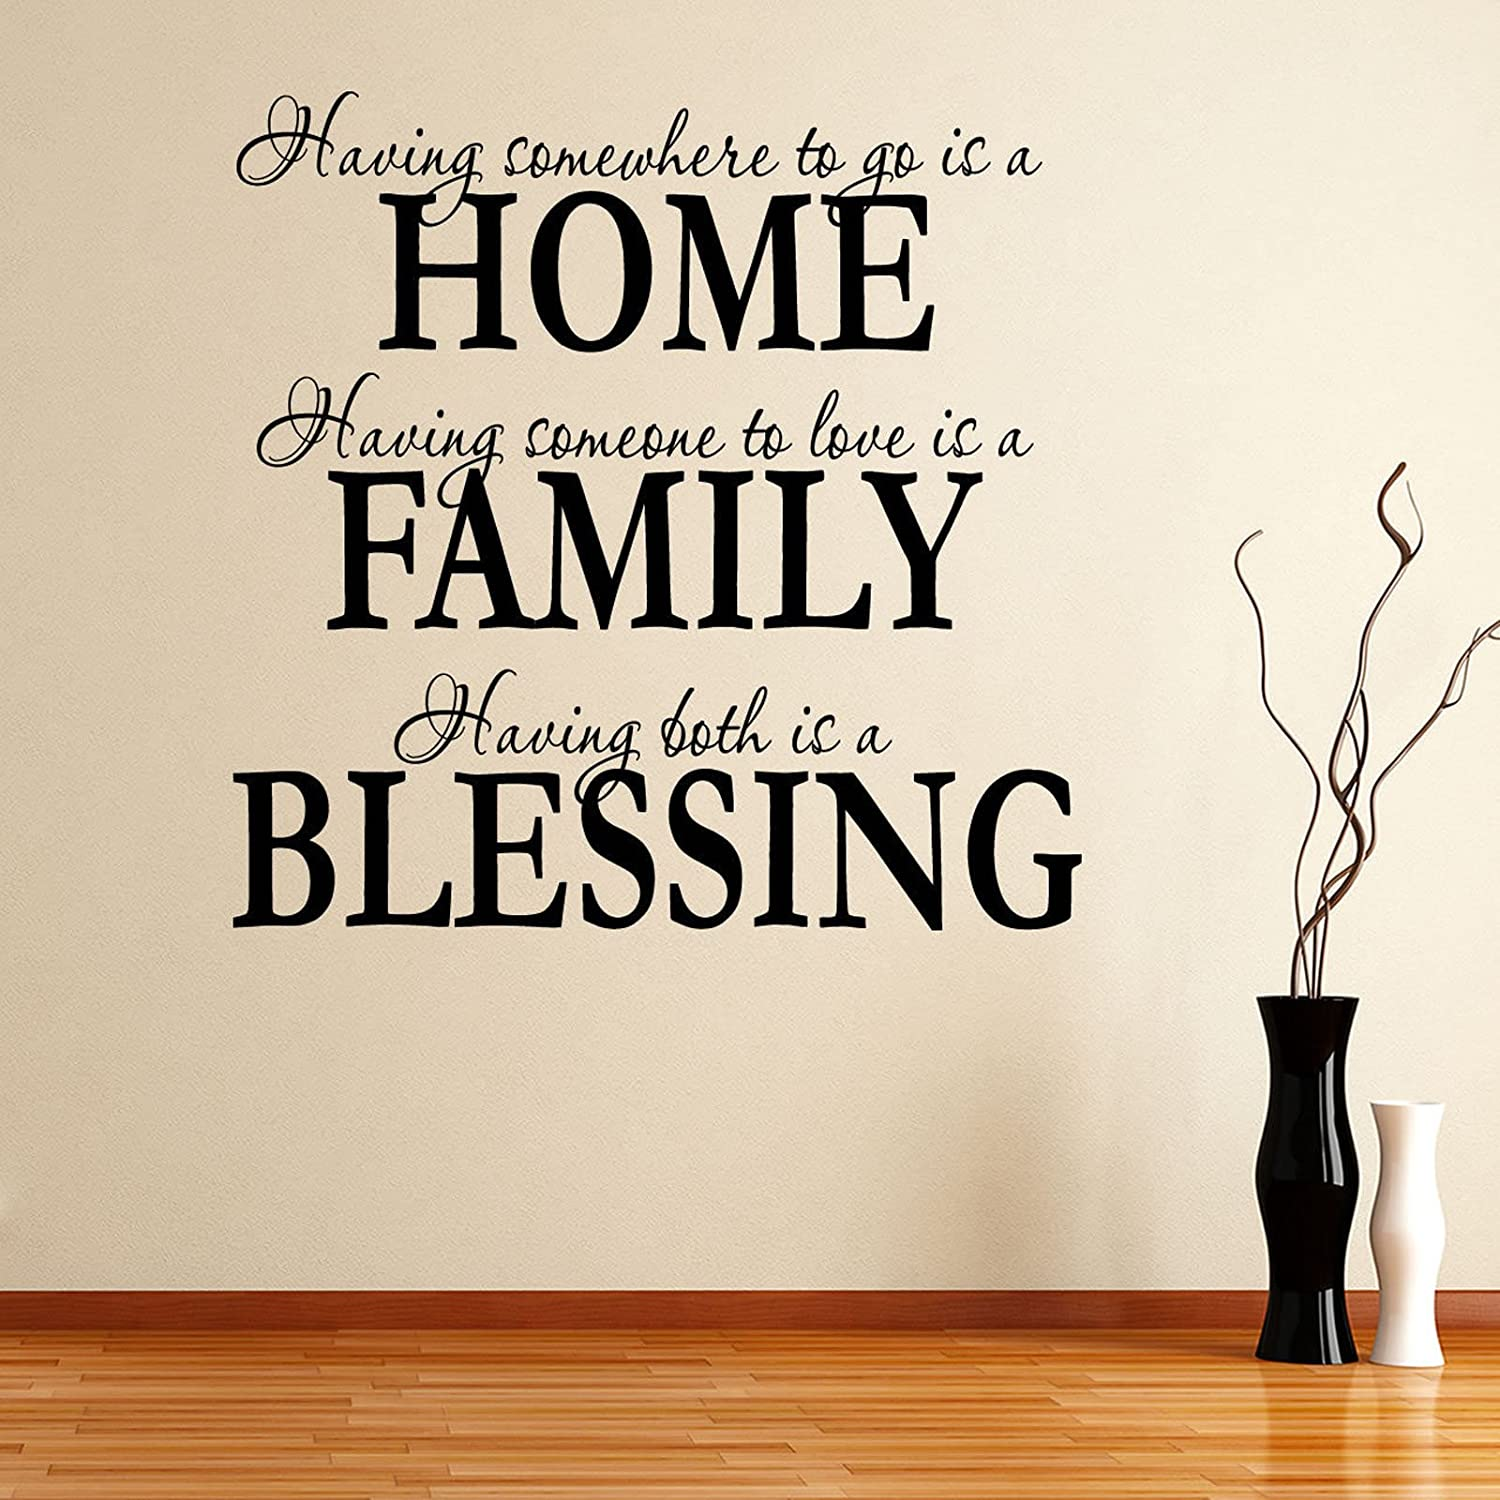 Wall Decor Stickers For Living Room Buy Having Somewhee To Go Is A Home Family Blessing Wall Decal